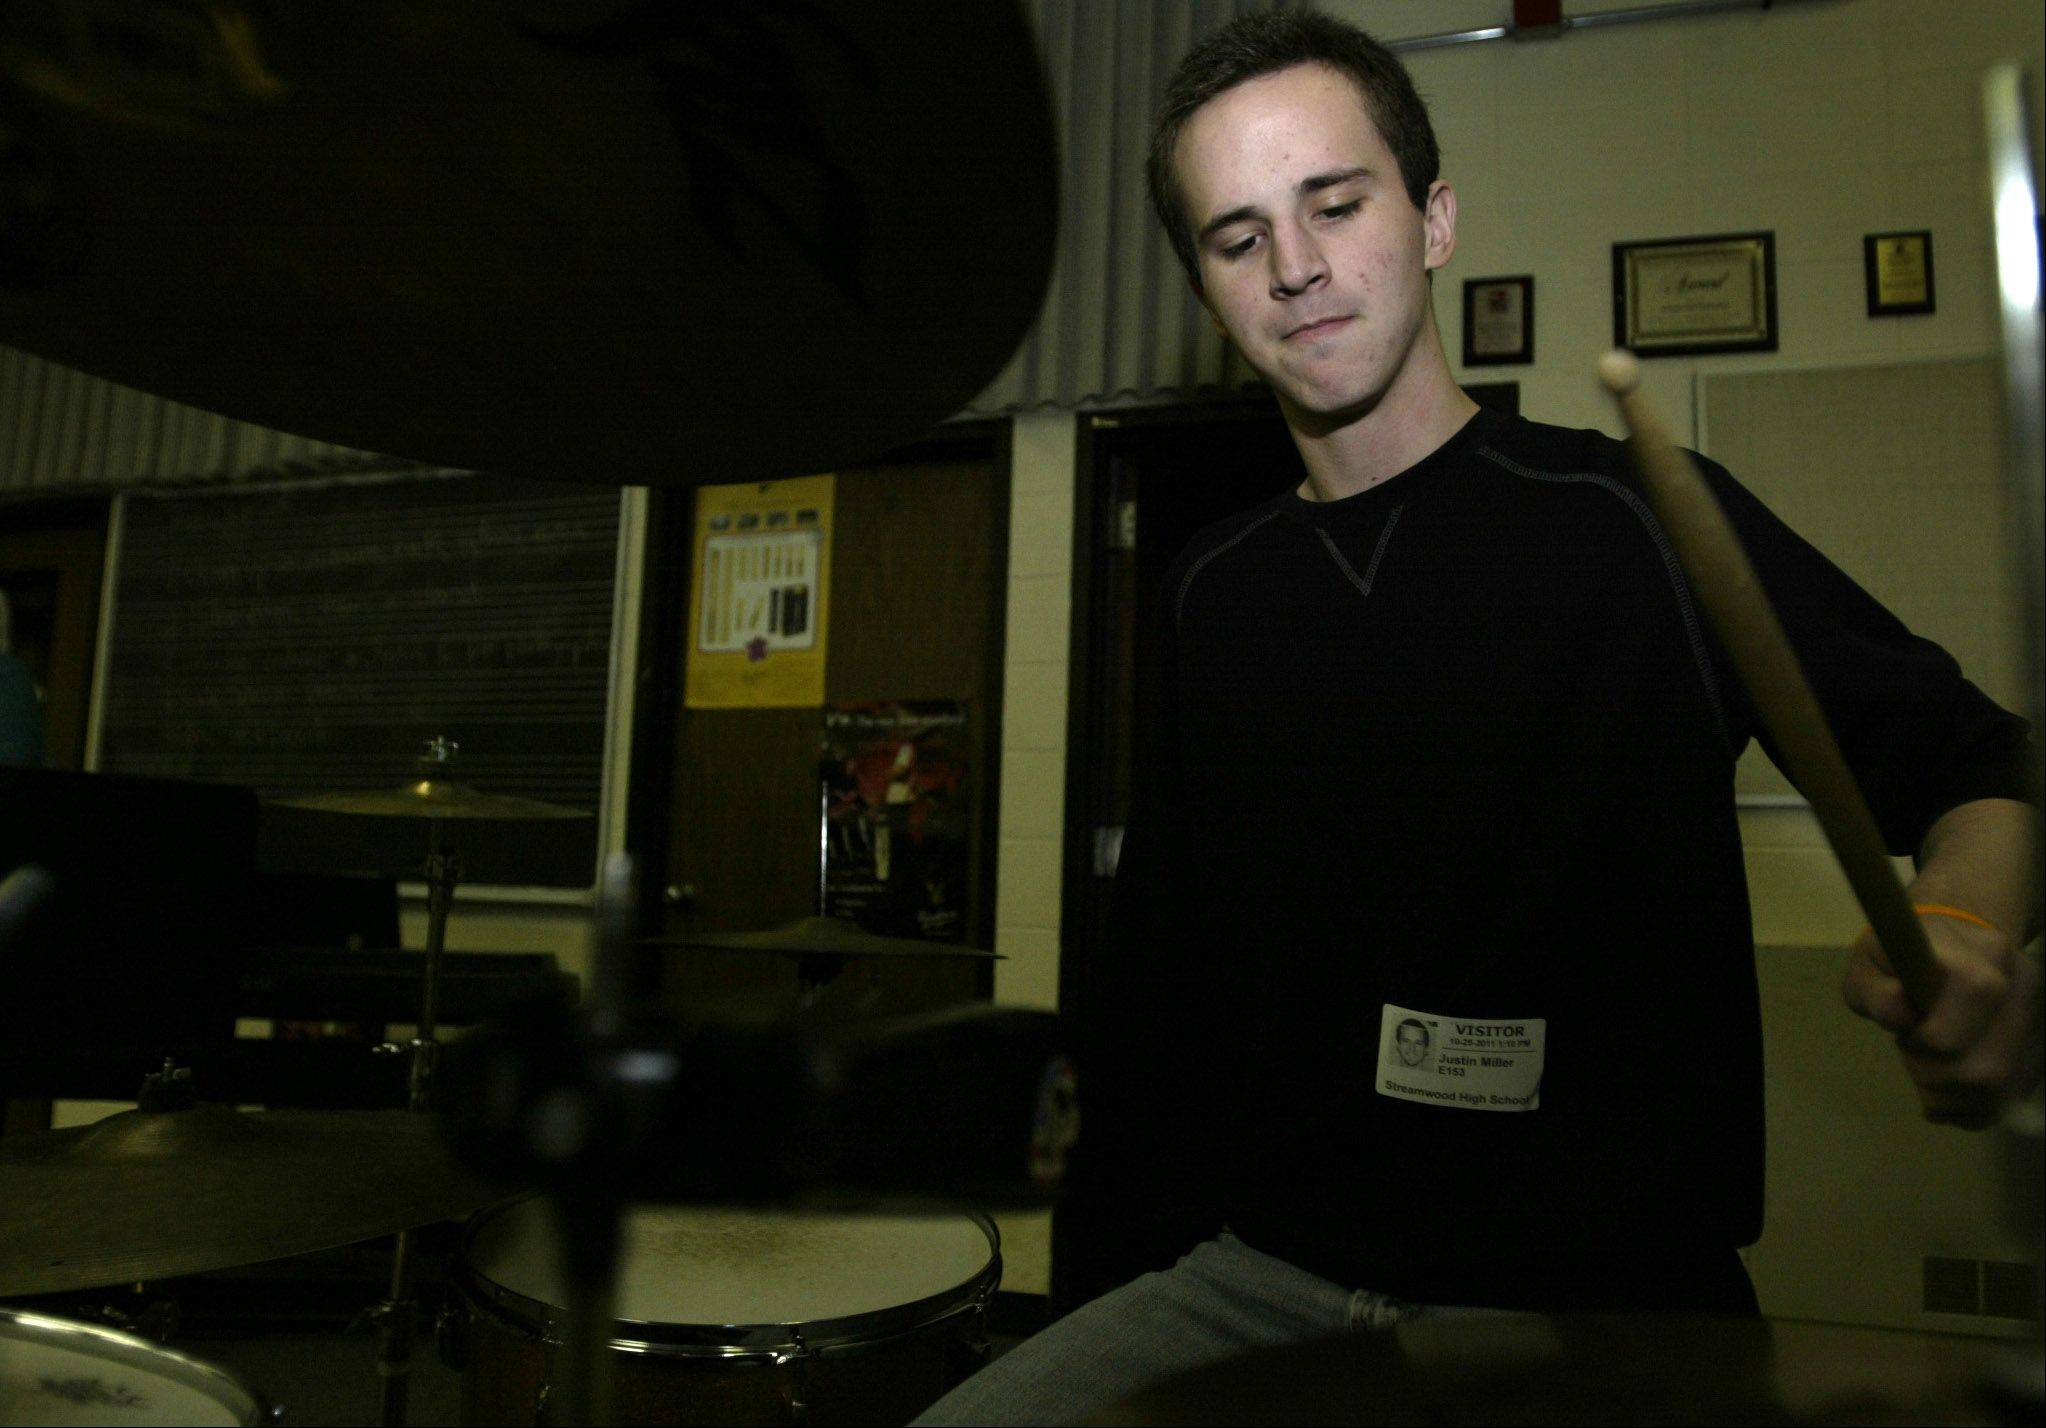 Justin Miller has been playing drums since he learned to walk. He lost his dominant arm to a rare cancer, epithelioid sarcoma, but has taught himself to play with one arm.